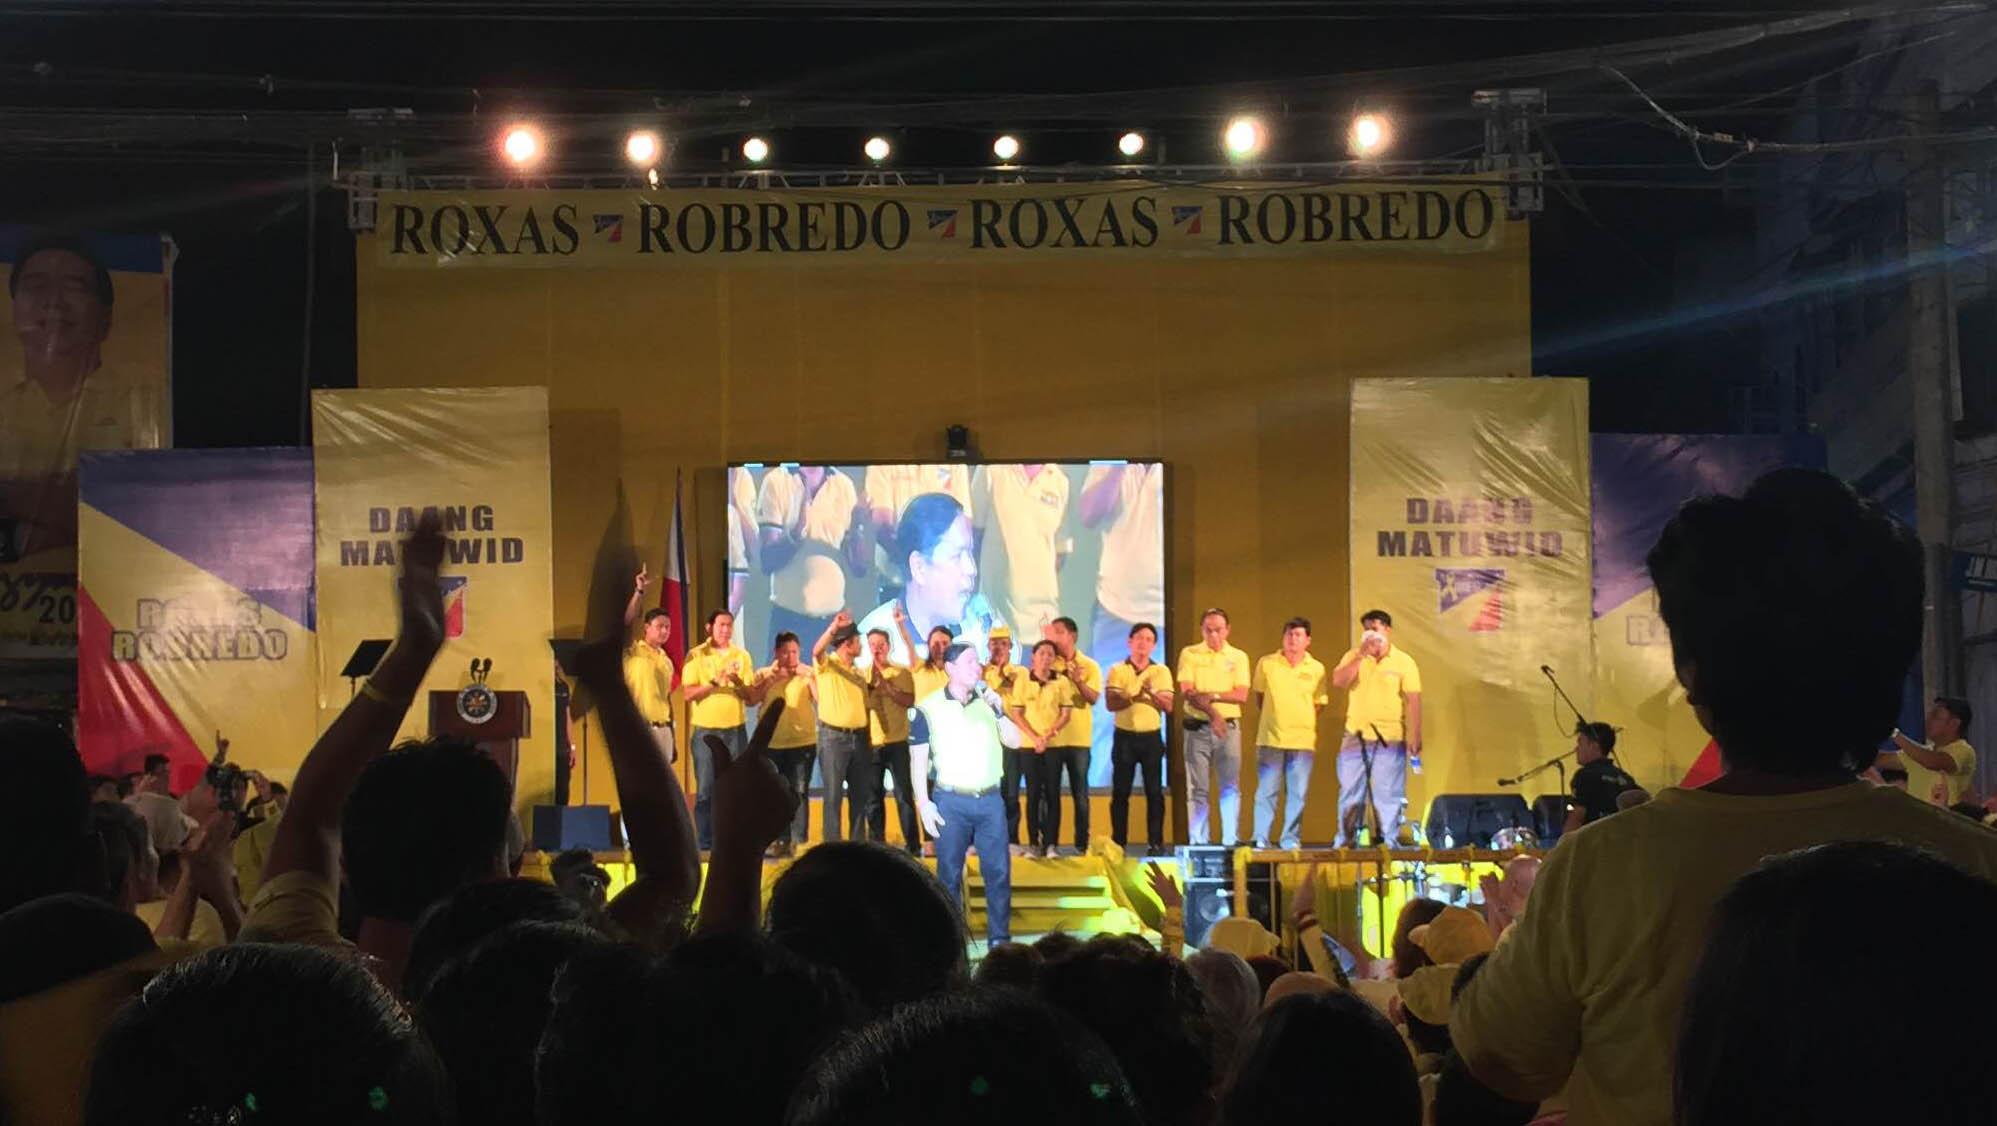 ILOILO MITING DE AVANCE. Liberal Party candidates in Iloilo City on Tuesday, May 3. Photo by Bea Cupin/Rappler